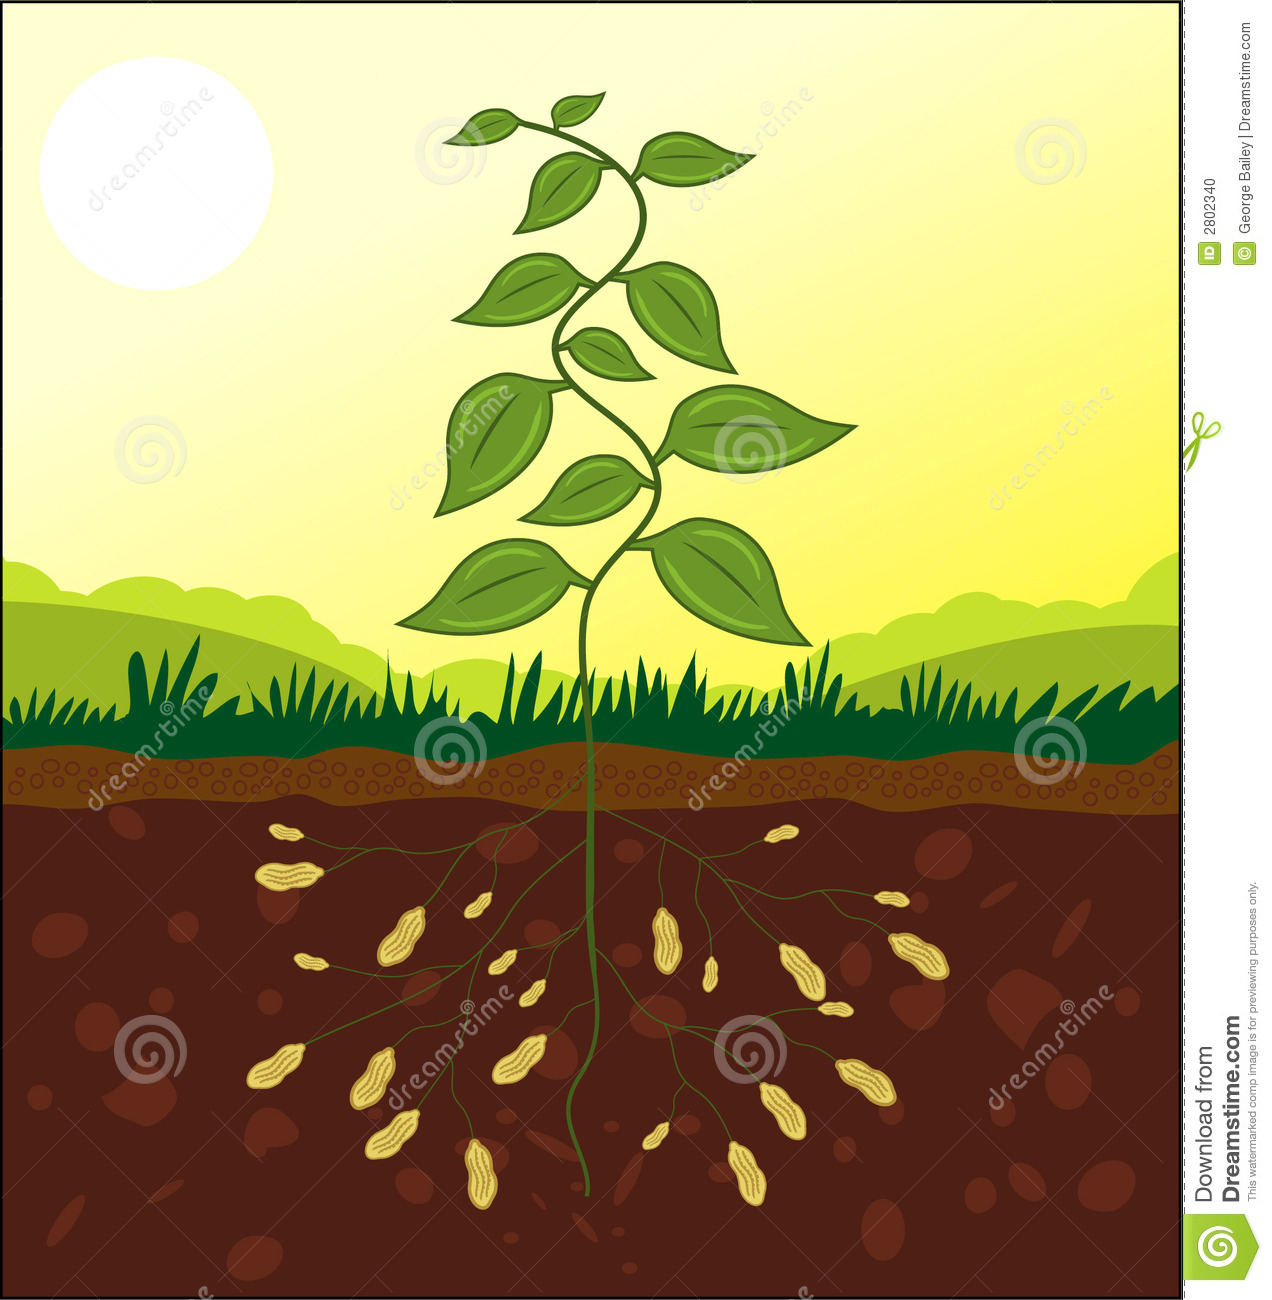 Peanut plant cross section stock vector illustration of peanuts peanut plant cross section ccuart Images